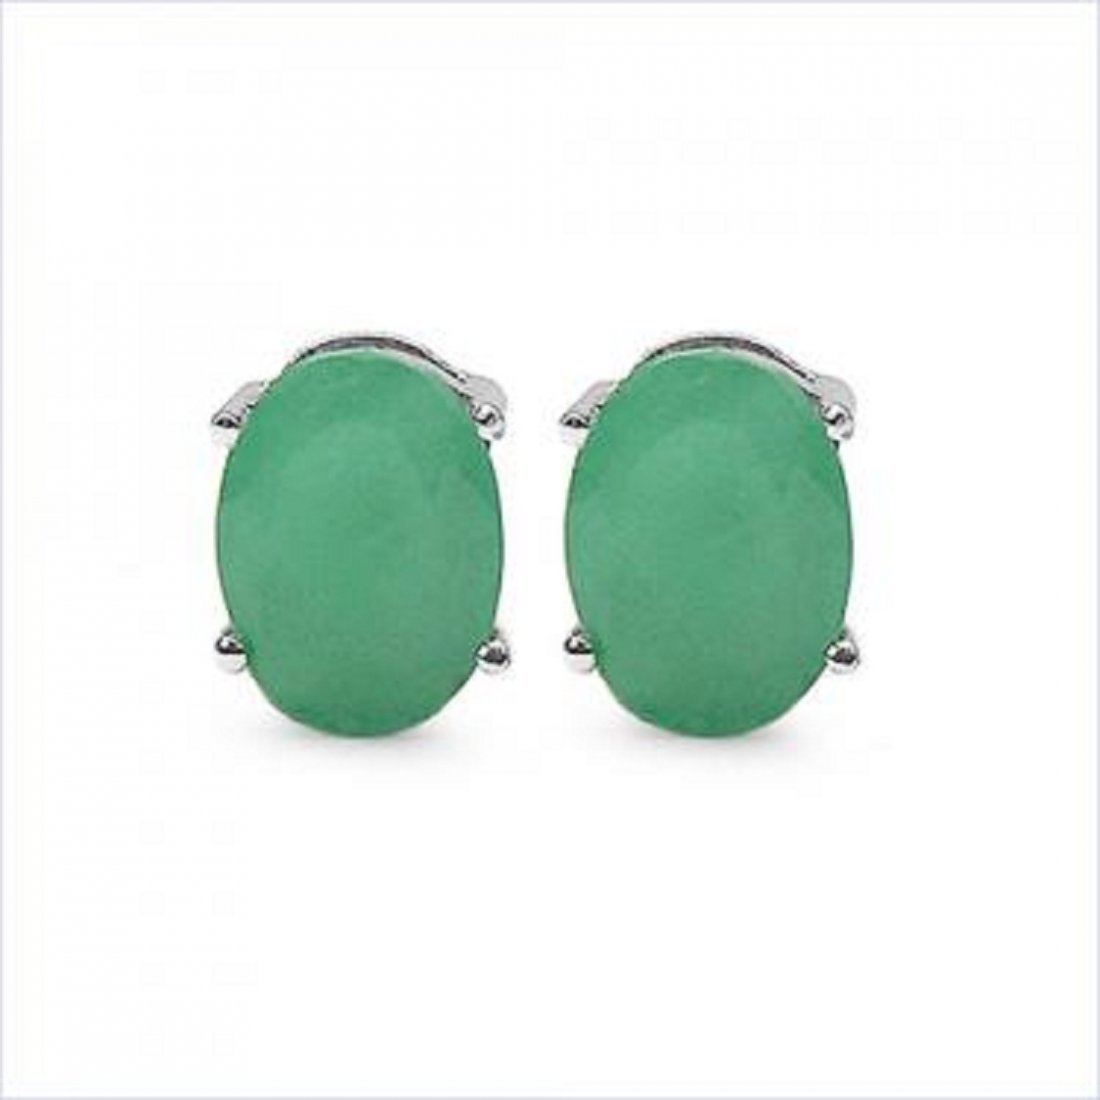 18: 3 CT Cabochon Emerald Stud Earrings